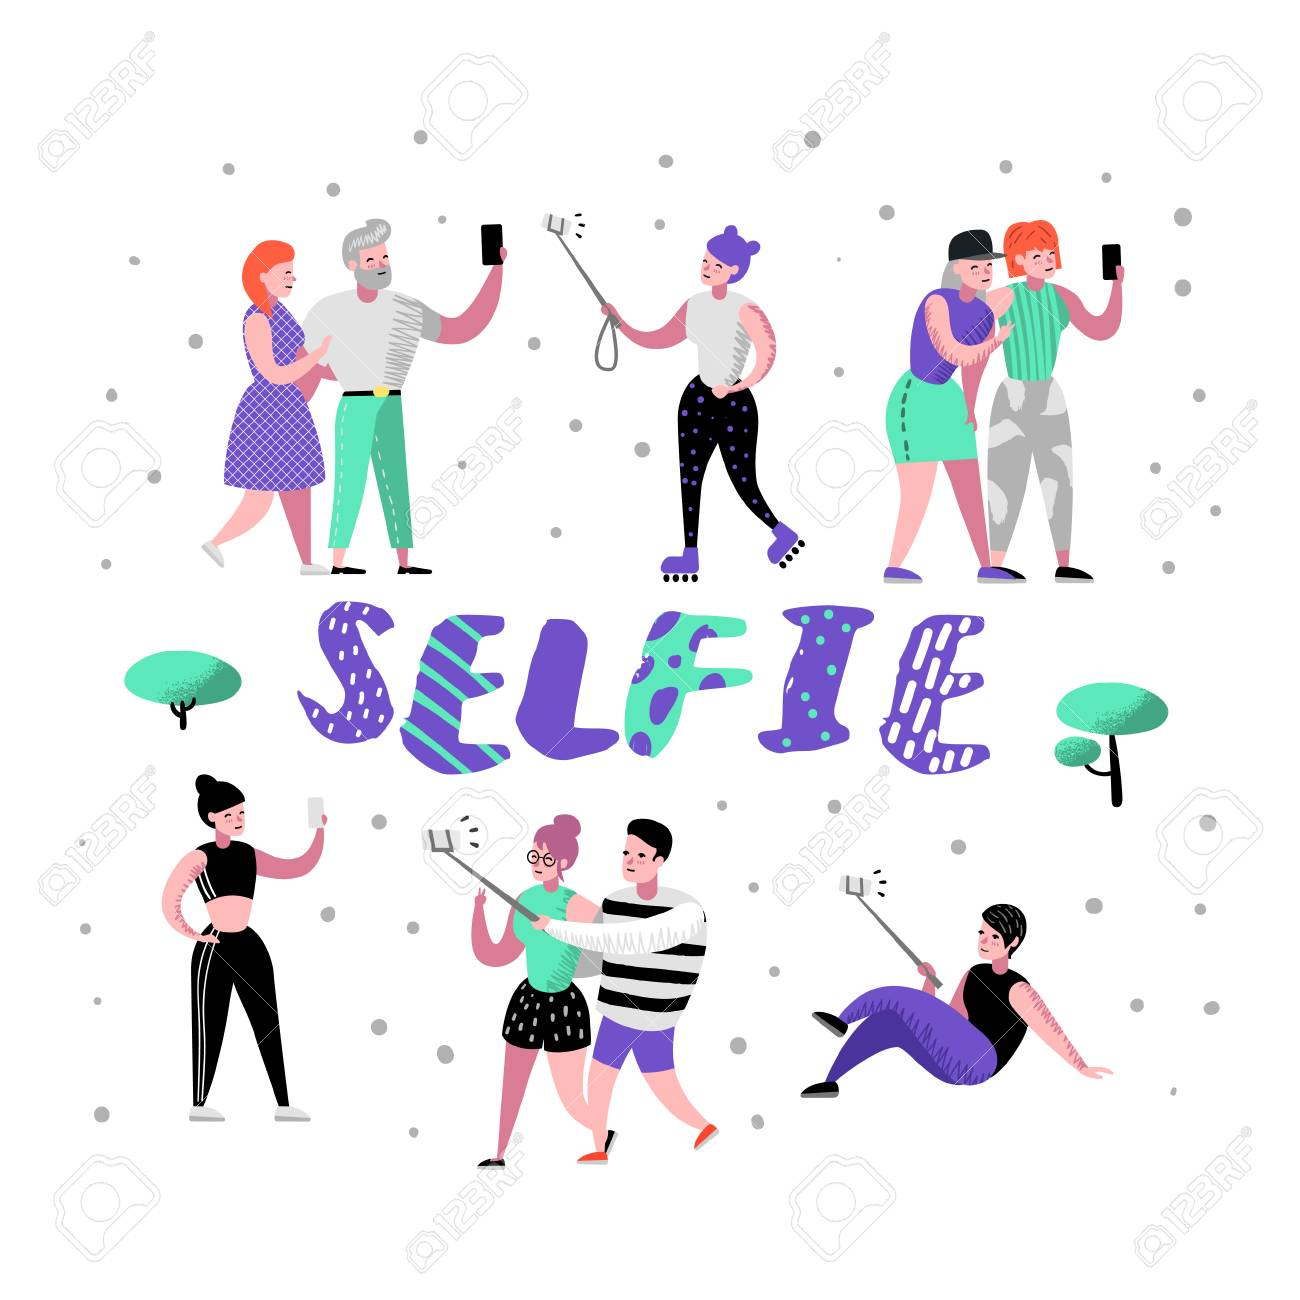 Young People Making Selfie with Smartphone. Flat Characters in Various Poses Taking Photo with Cellphone. Teenager with Mobile Device. Vector illustration - 110442580